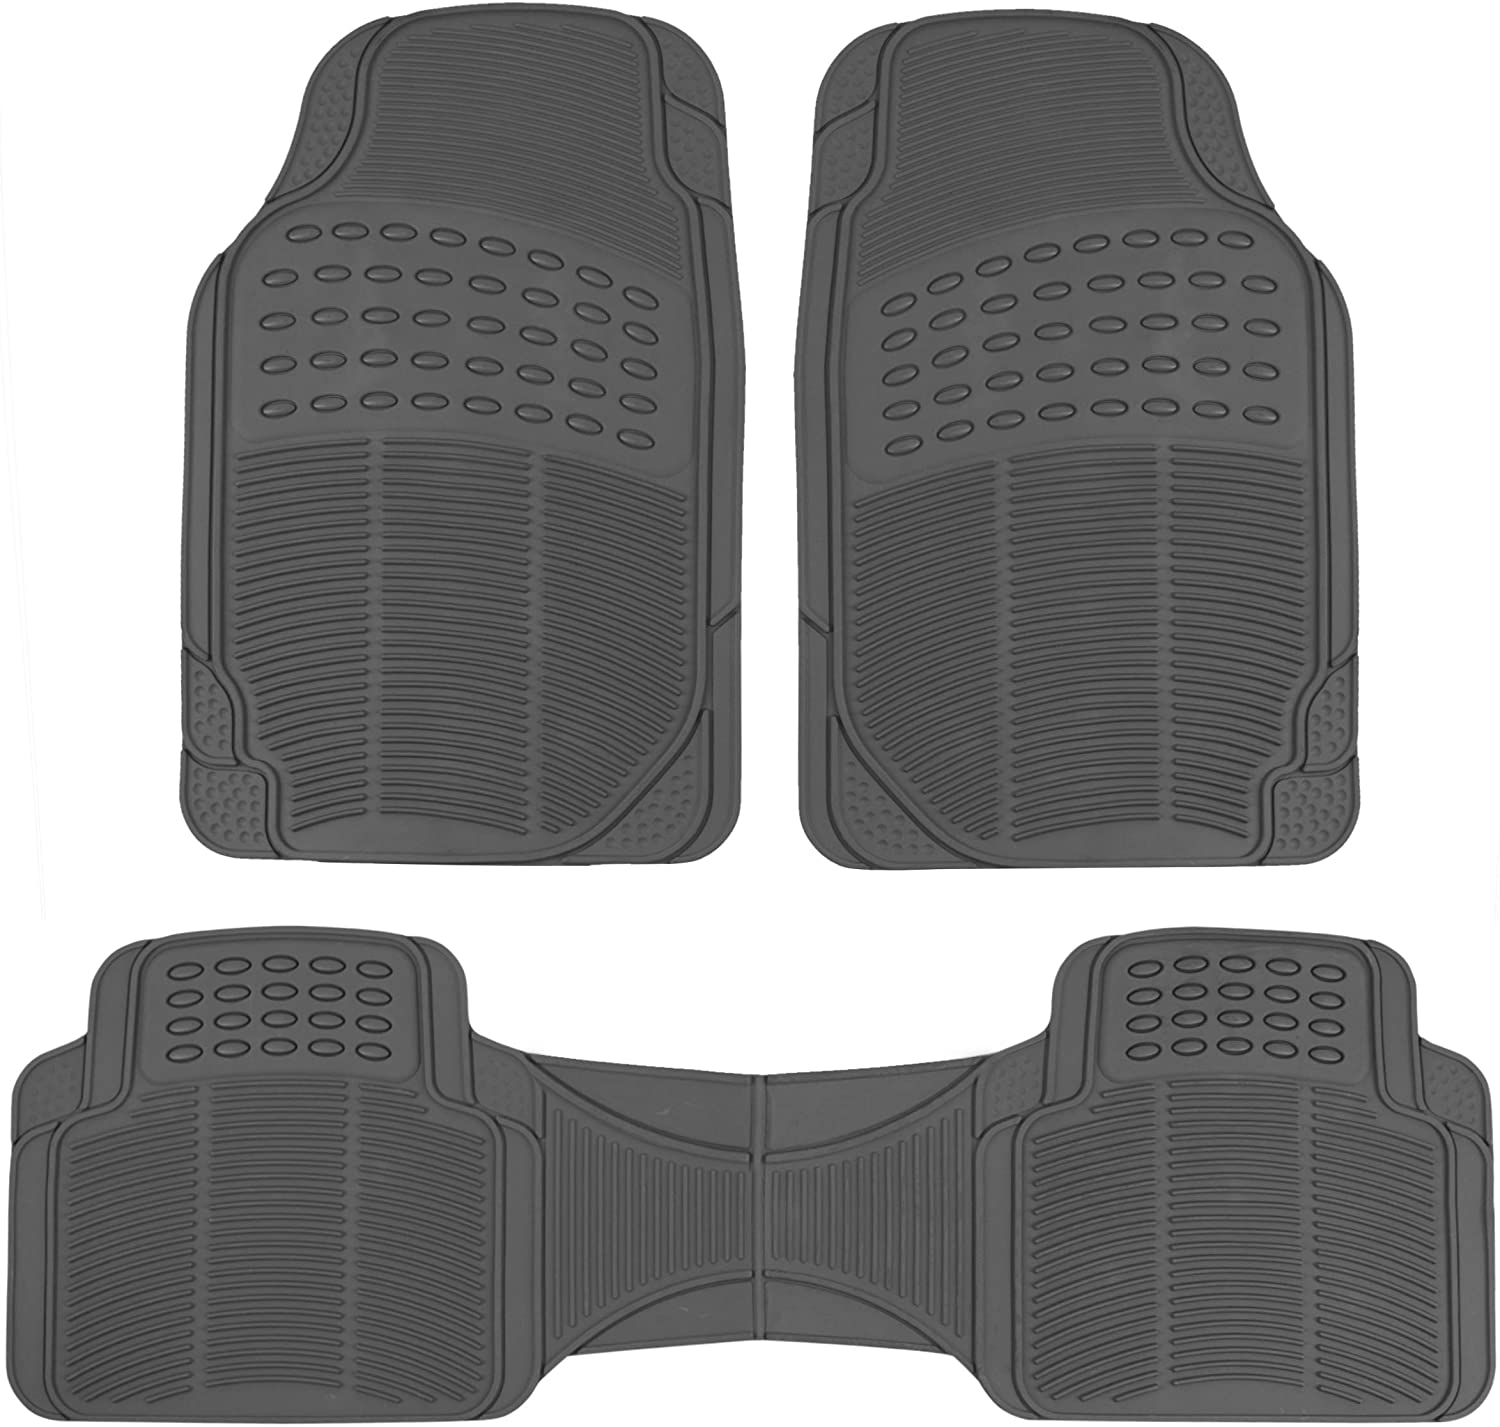 BDK MT783PLUS ProLiner Original 3pc Heavy Duty Front & Rear Rubber Floor Mats for Car SUV Van & Truck, All Weather Protection Universal Fit, Gray, 3 Piece (Pack of 1)